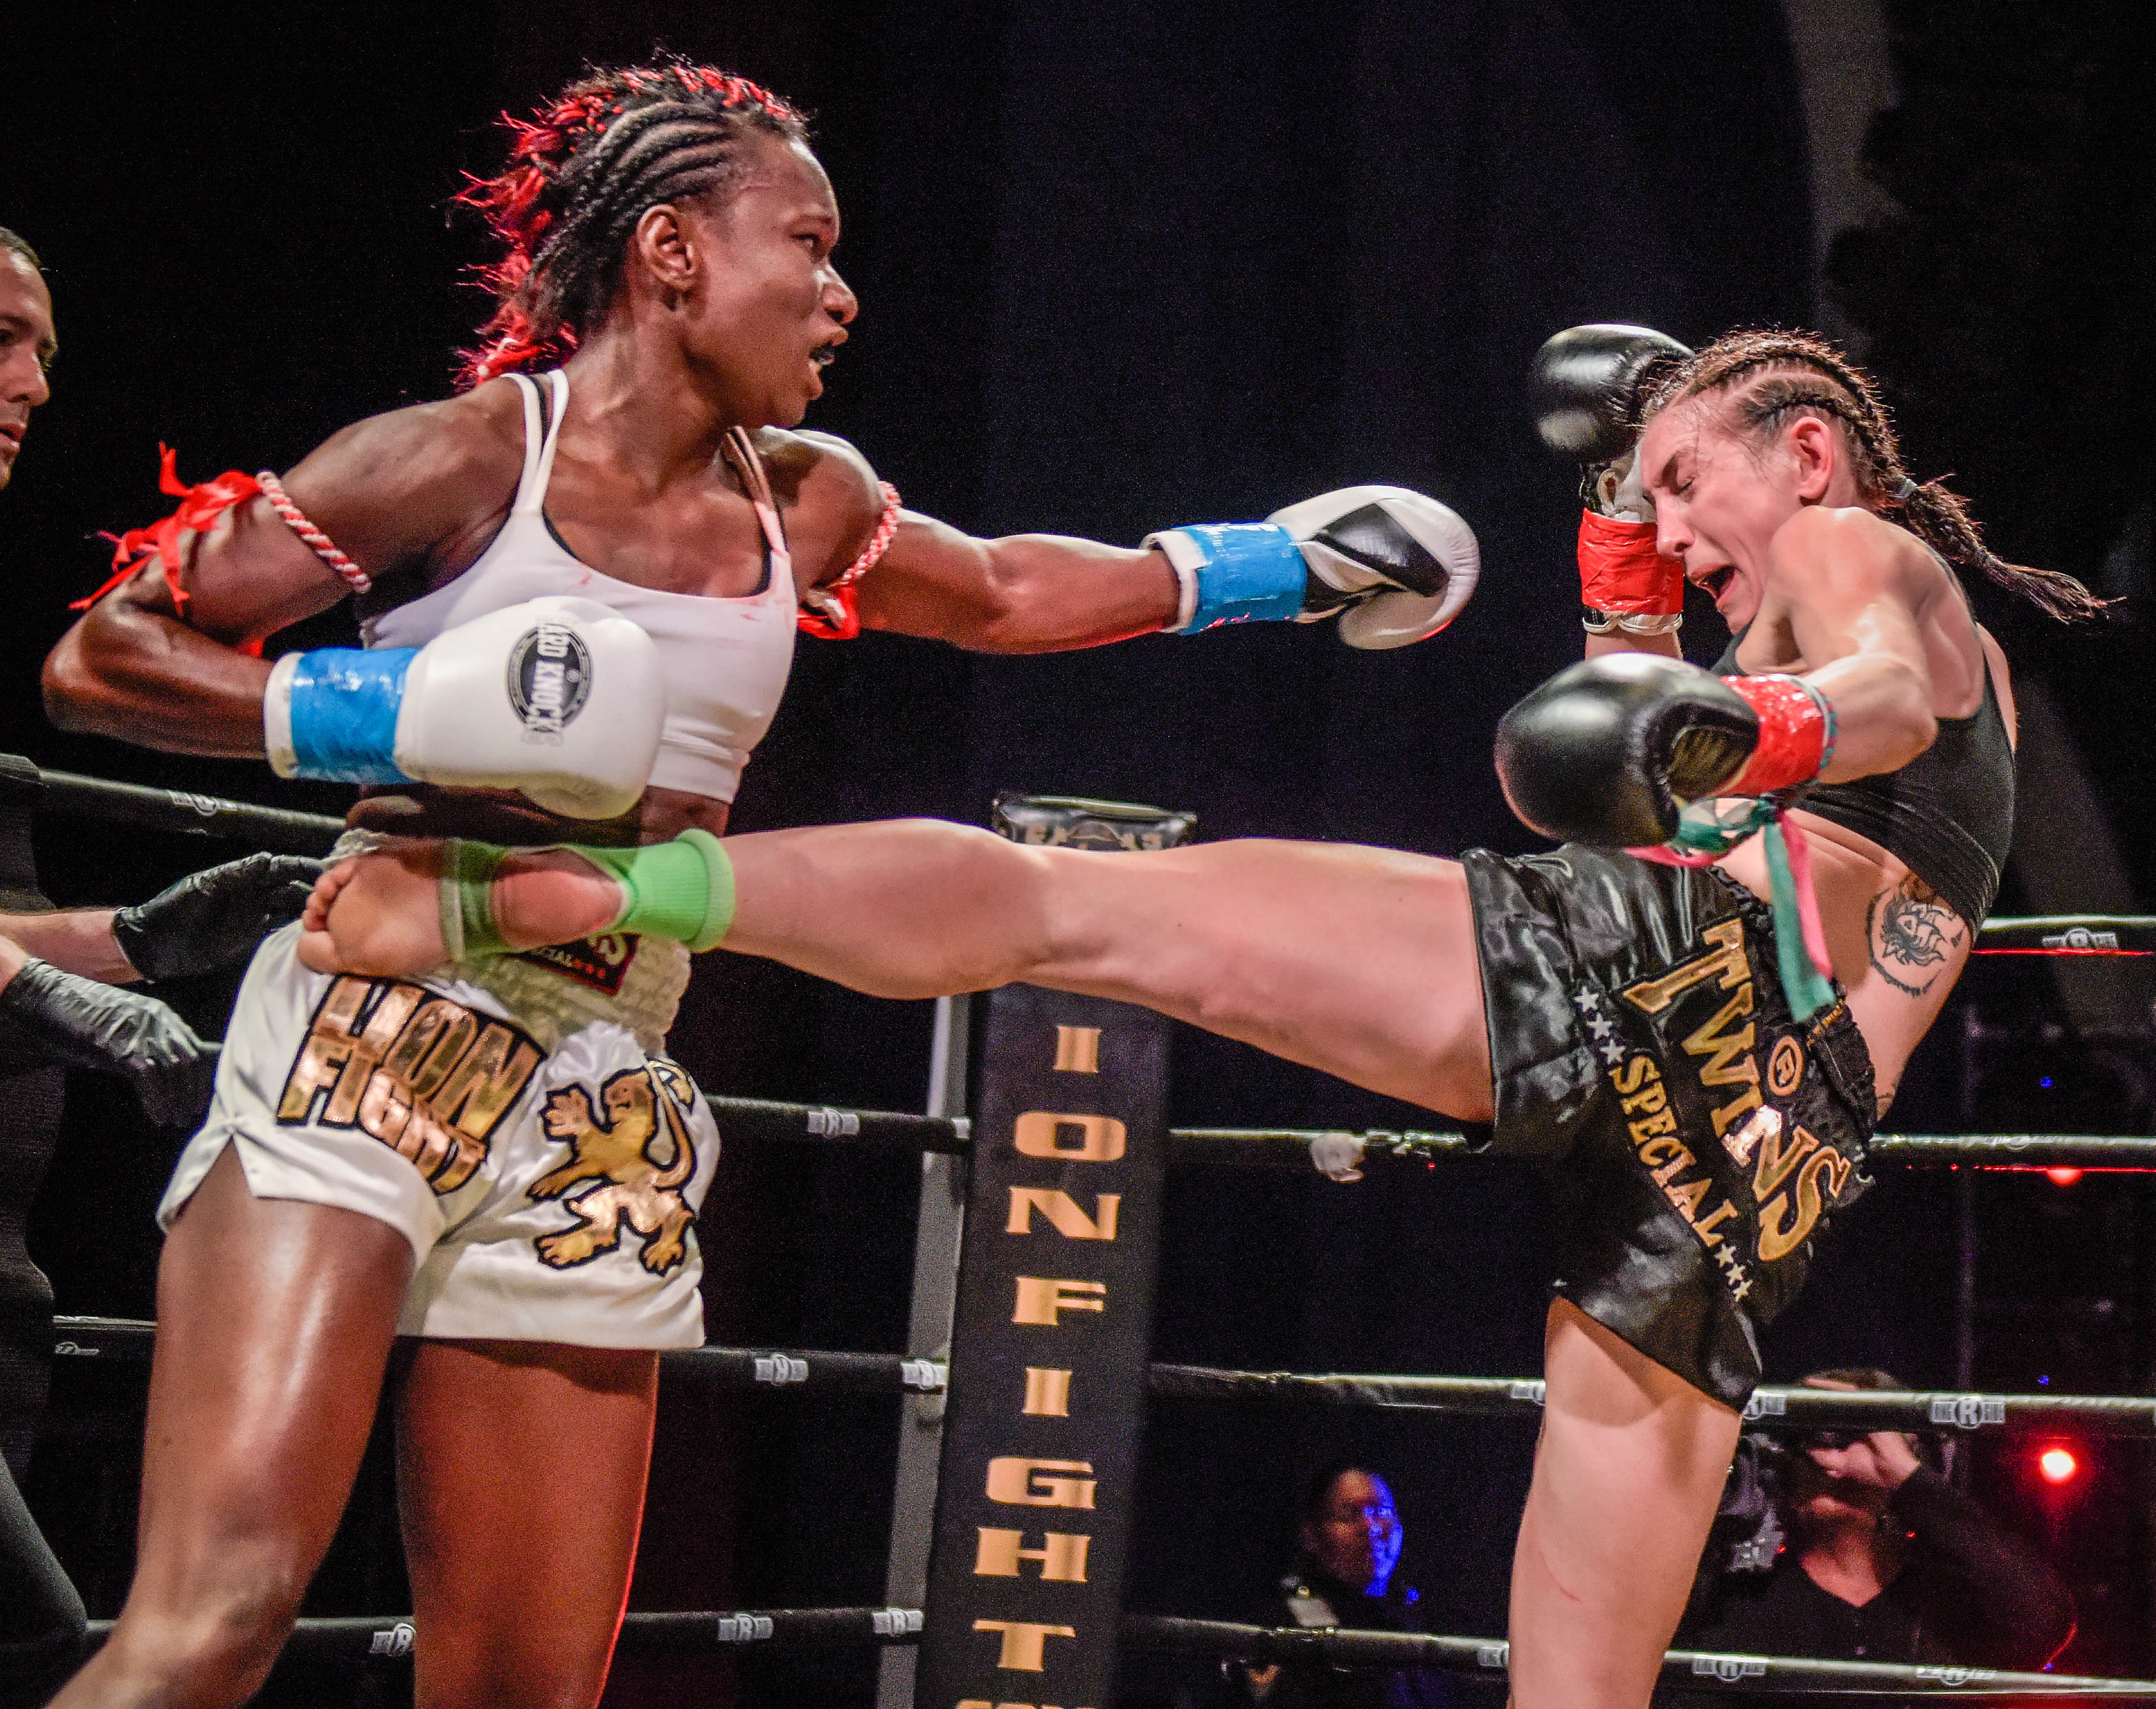 Tobin's performance in clinch wins Muay Thai bout